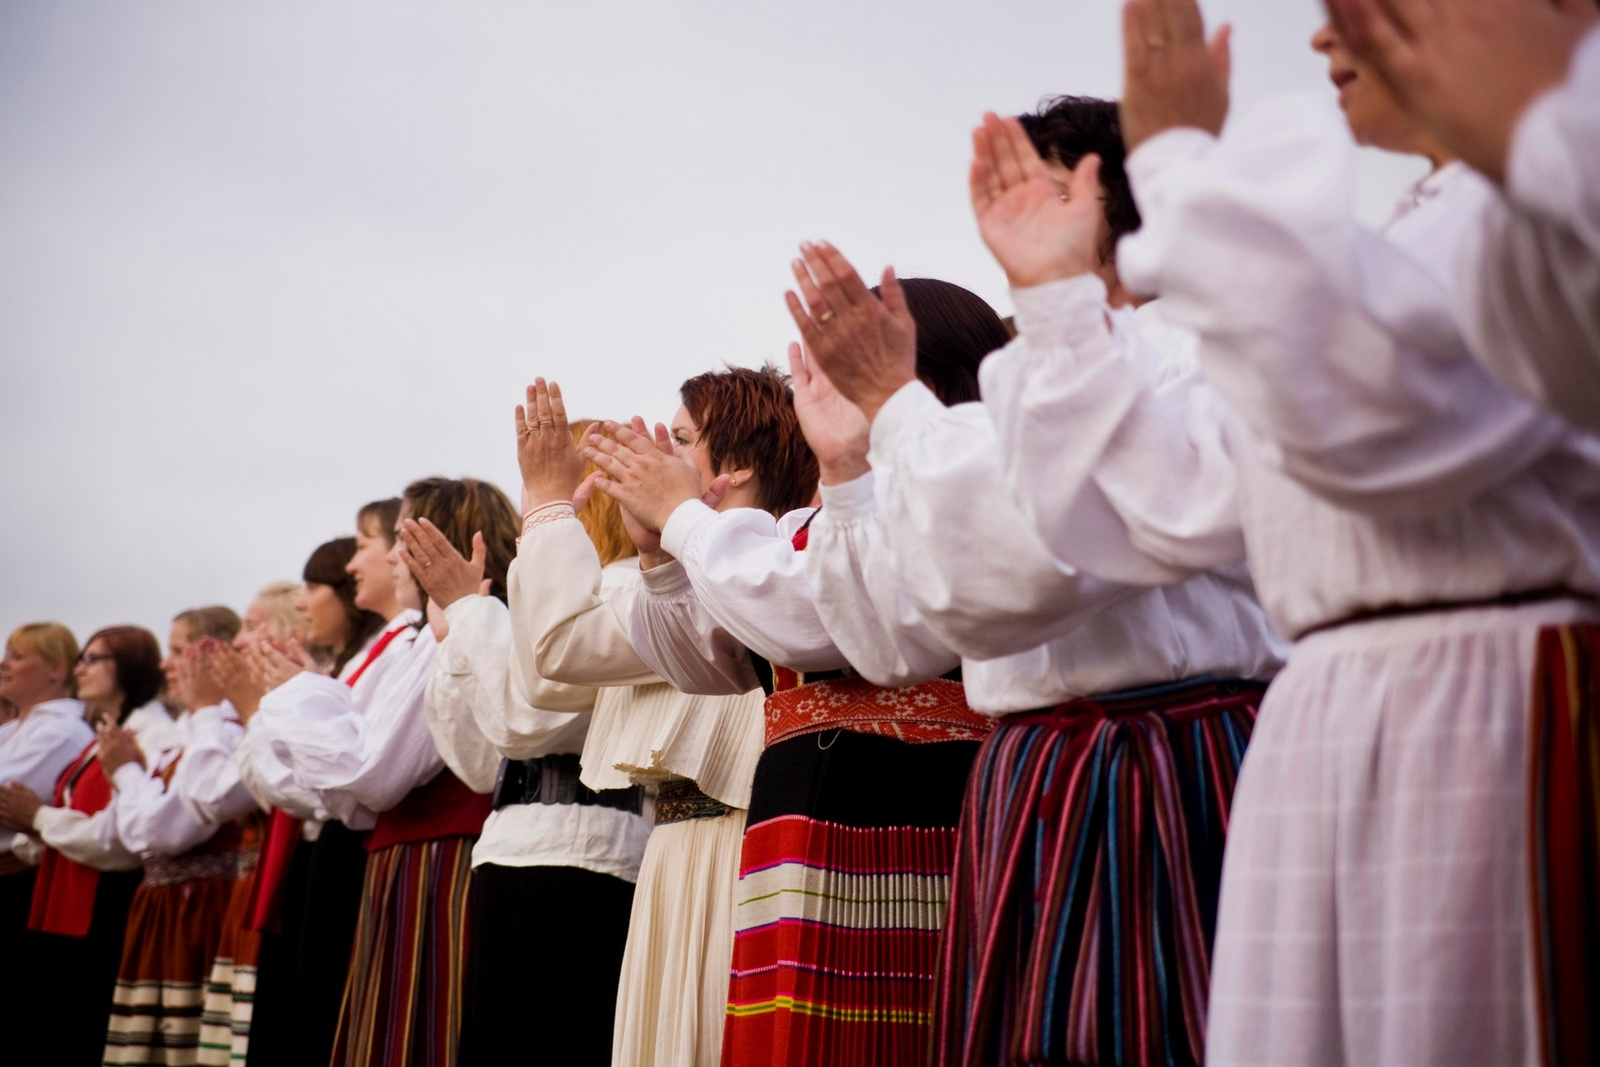 Is the Estonian national anthem on loan?